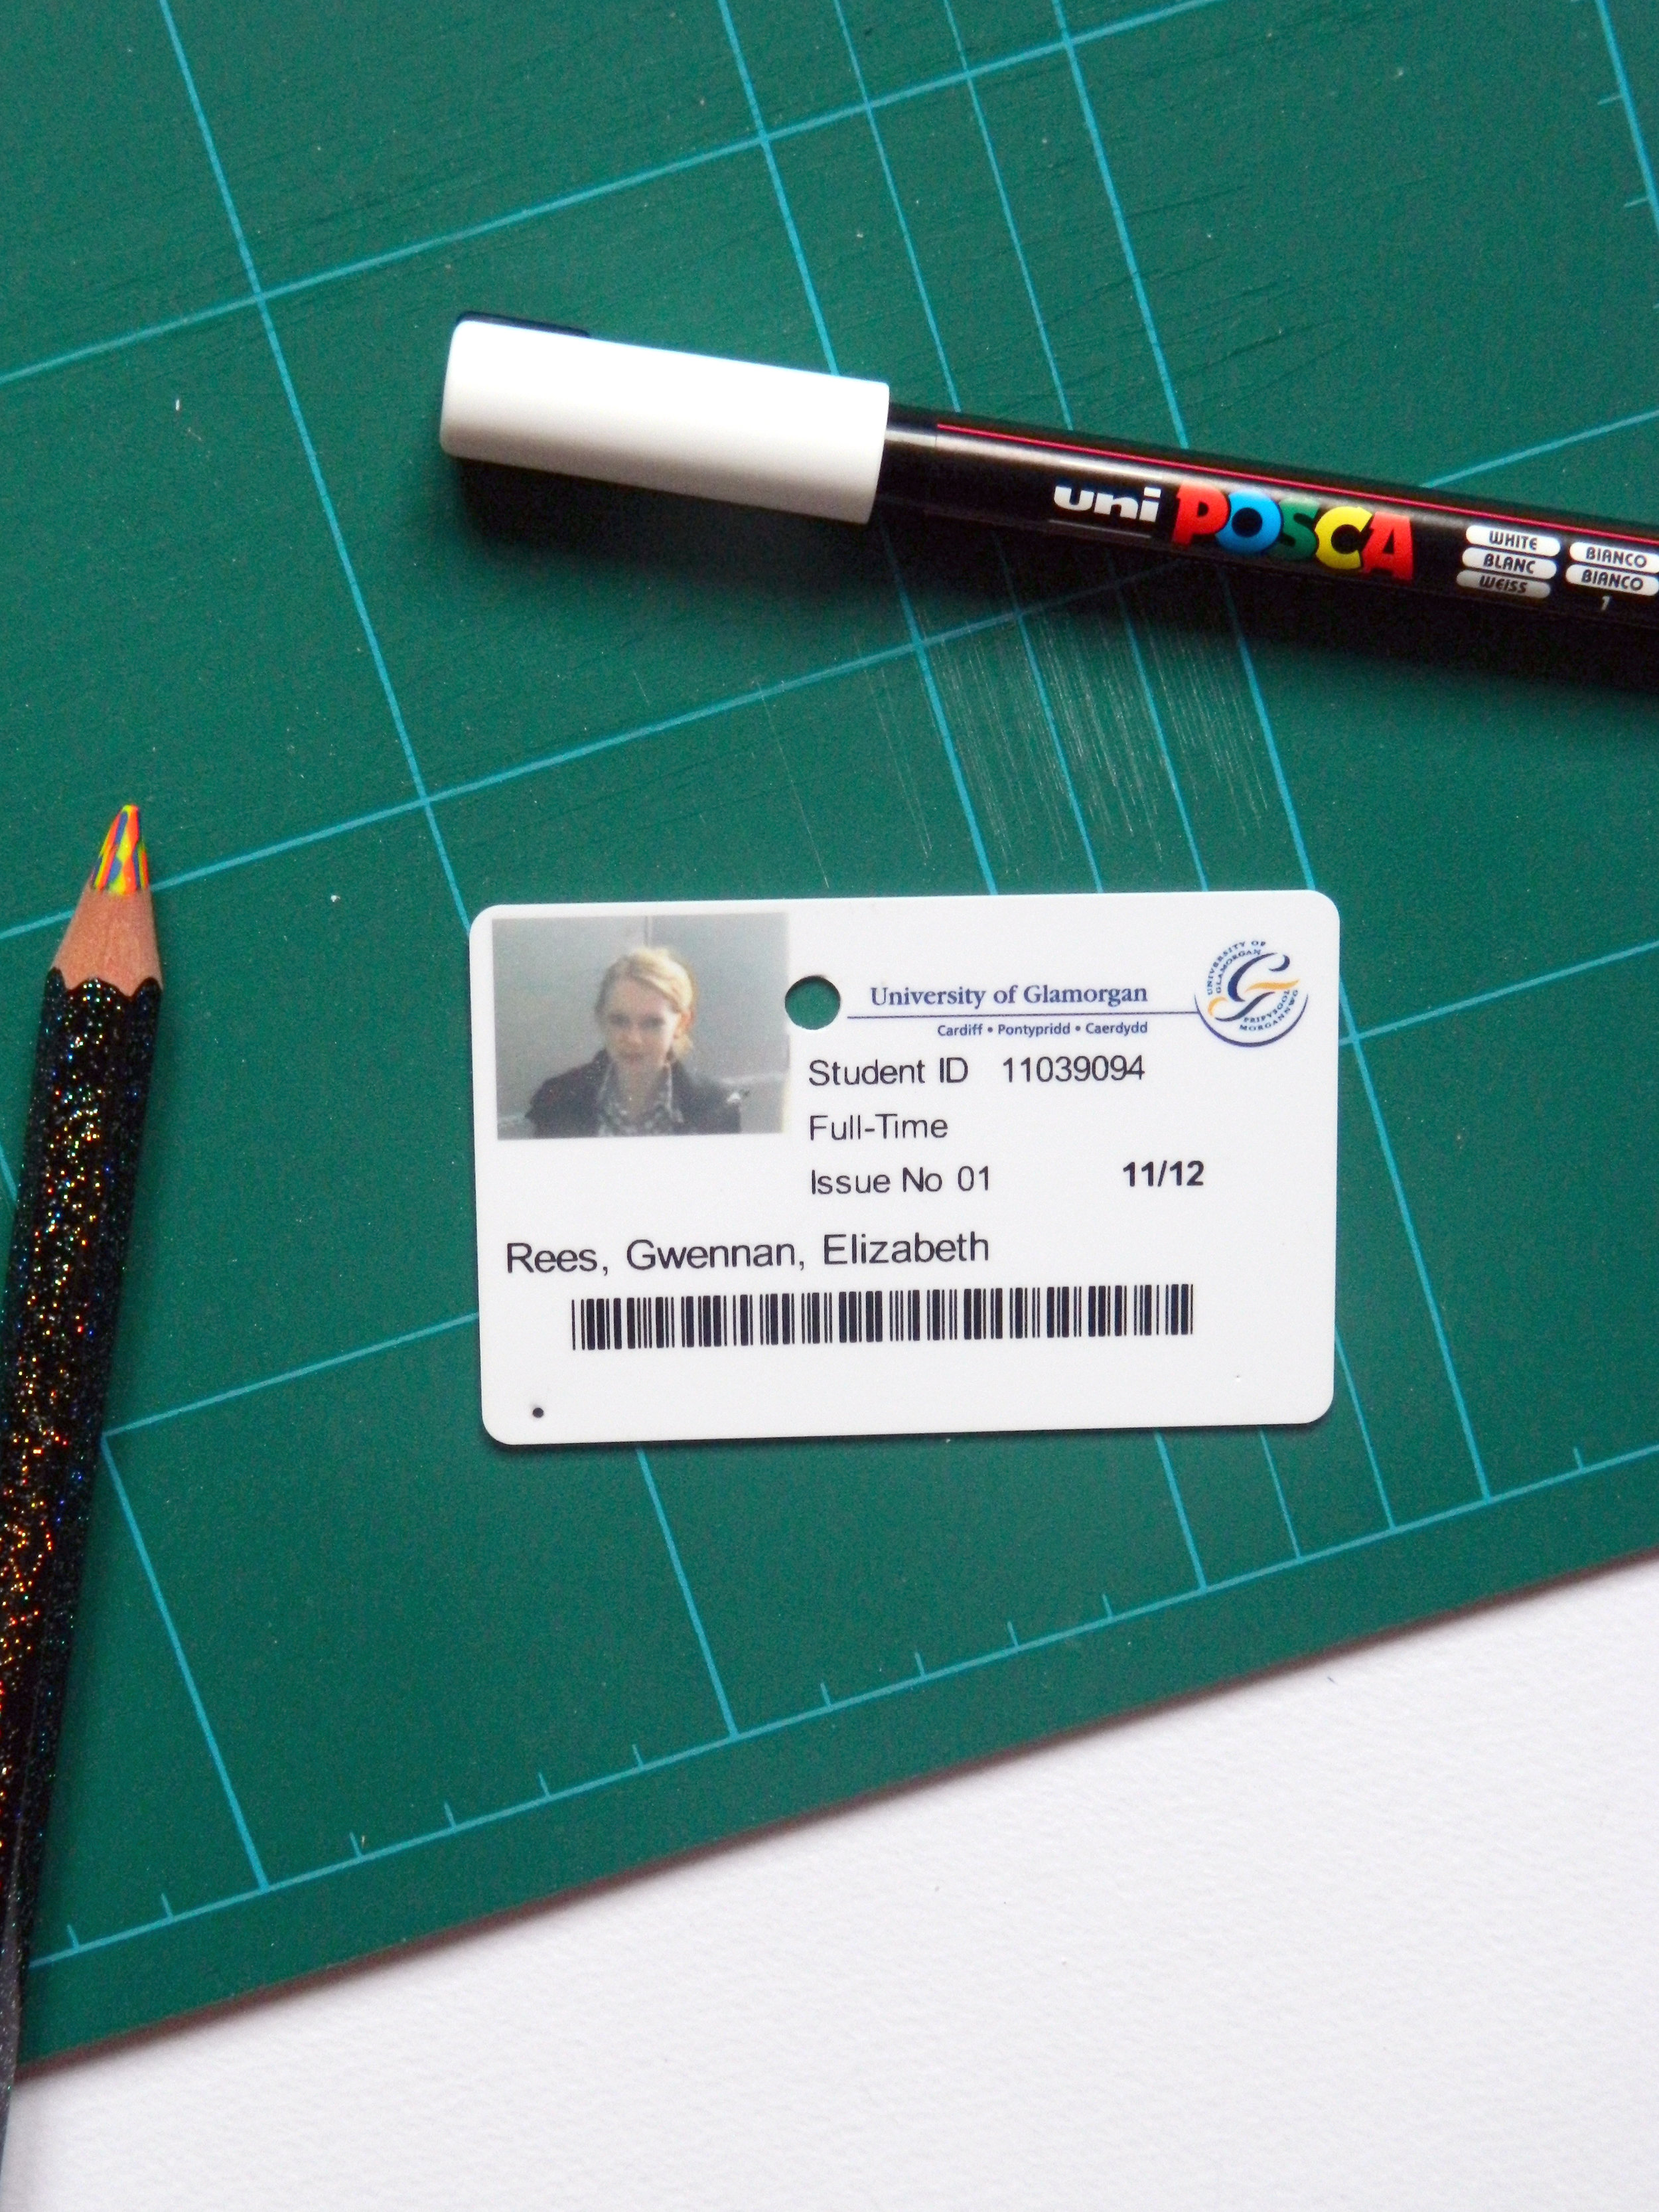 One of them times when they take the photo for your student card there and then. Not good.